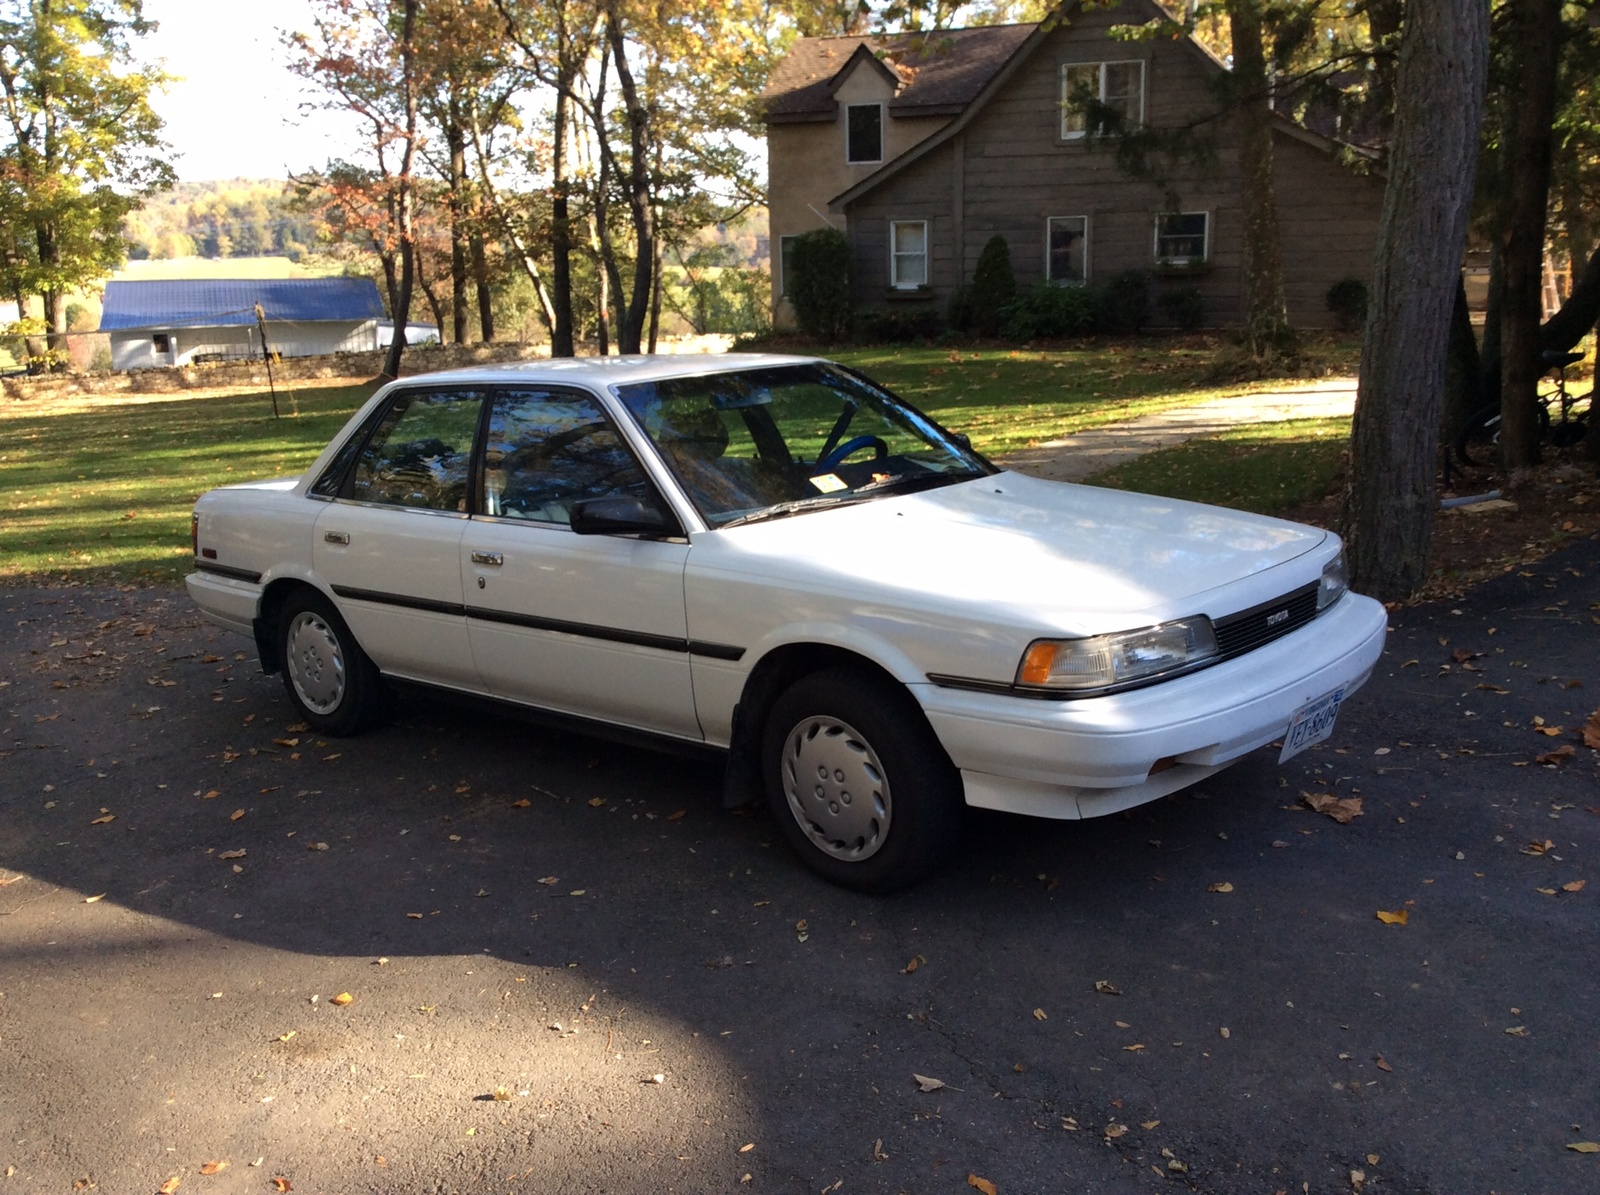 Toyota Camry Dx Awd Pic X on 1991 Toyota Camry Coil